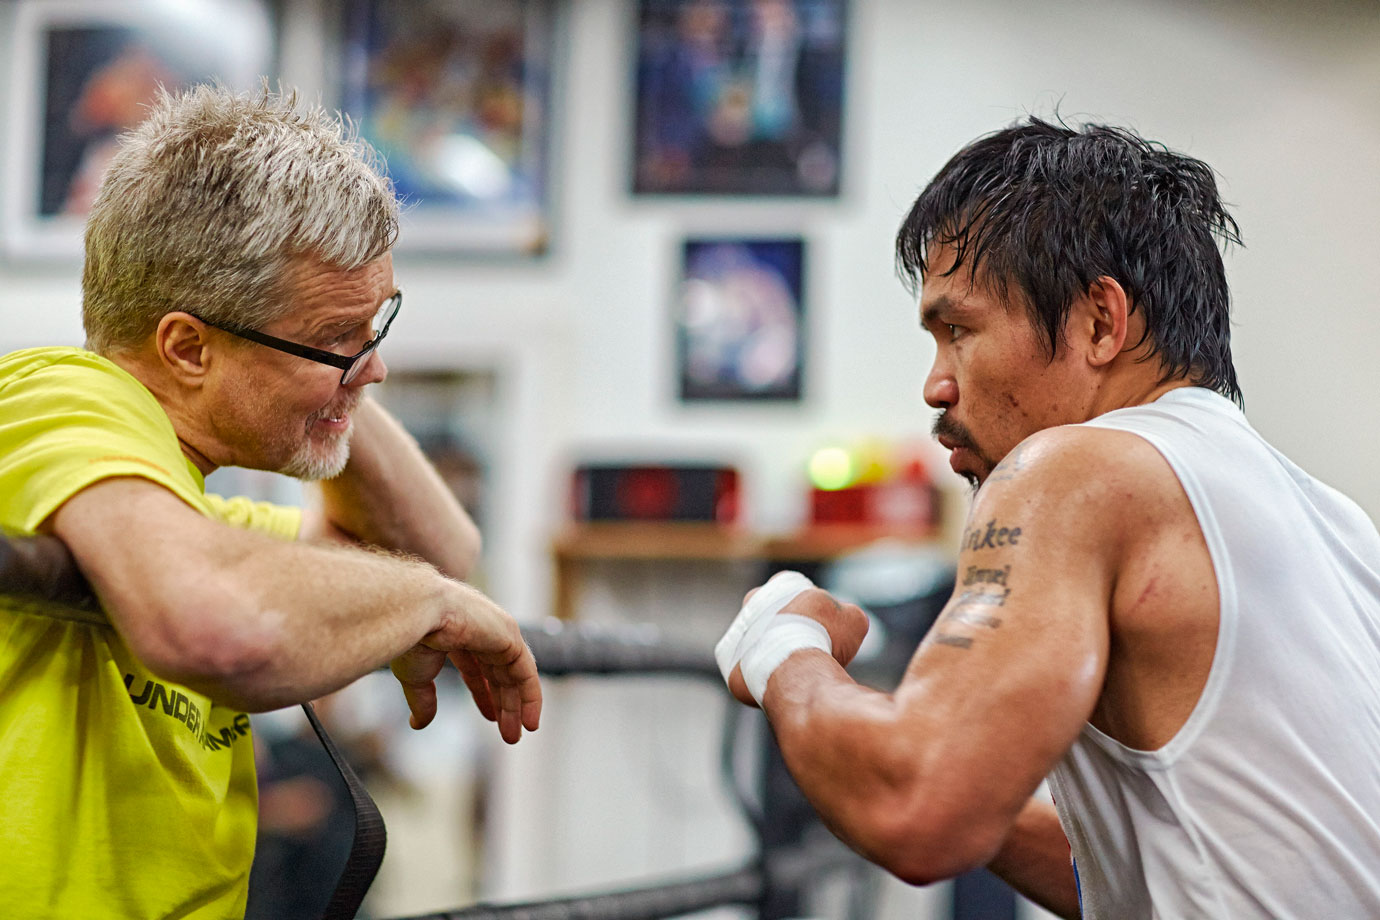 Trainer Freddie Roach has struggled to get Pacquiao to buy in to his strategy for beating Mayweather.